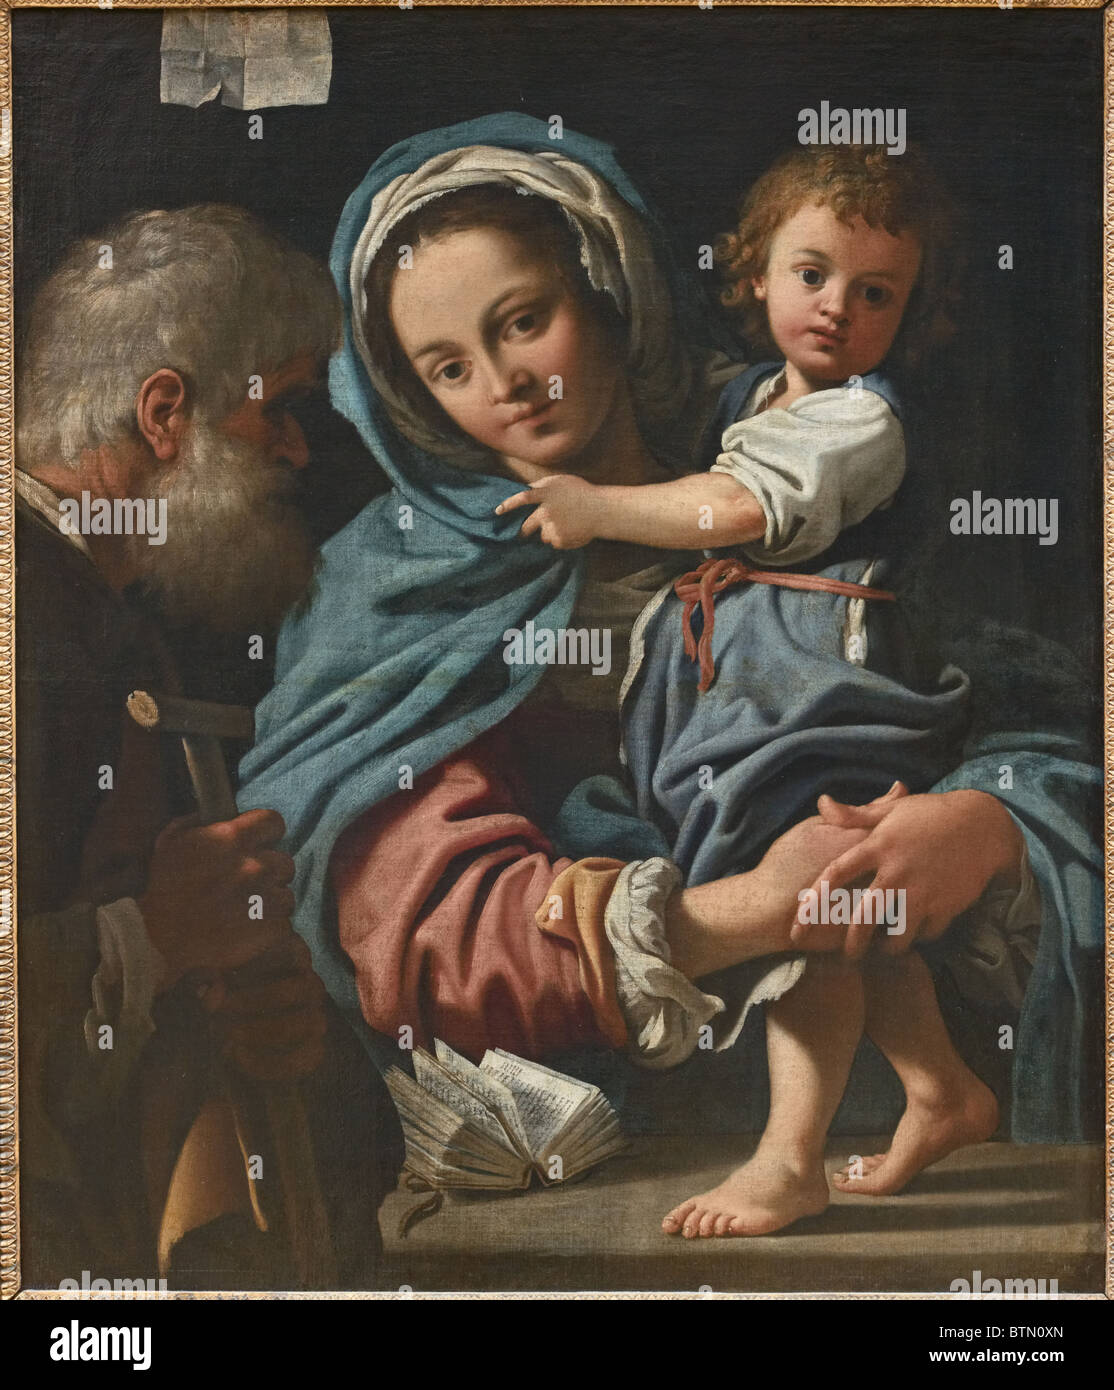 Holy Family by Italian early Baroque painter Bartolomeo SCHEDONI, c 1610-12, Louvre Museum Paris - Stock Image